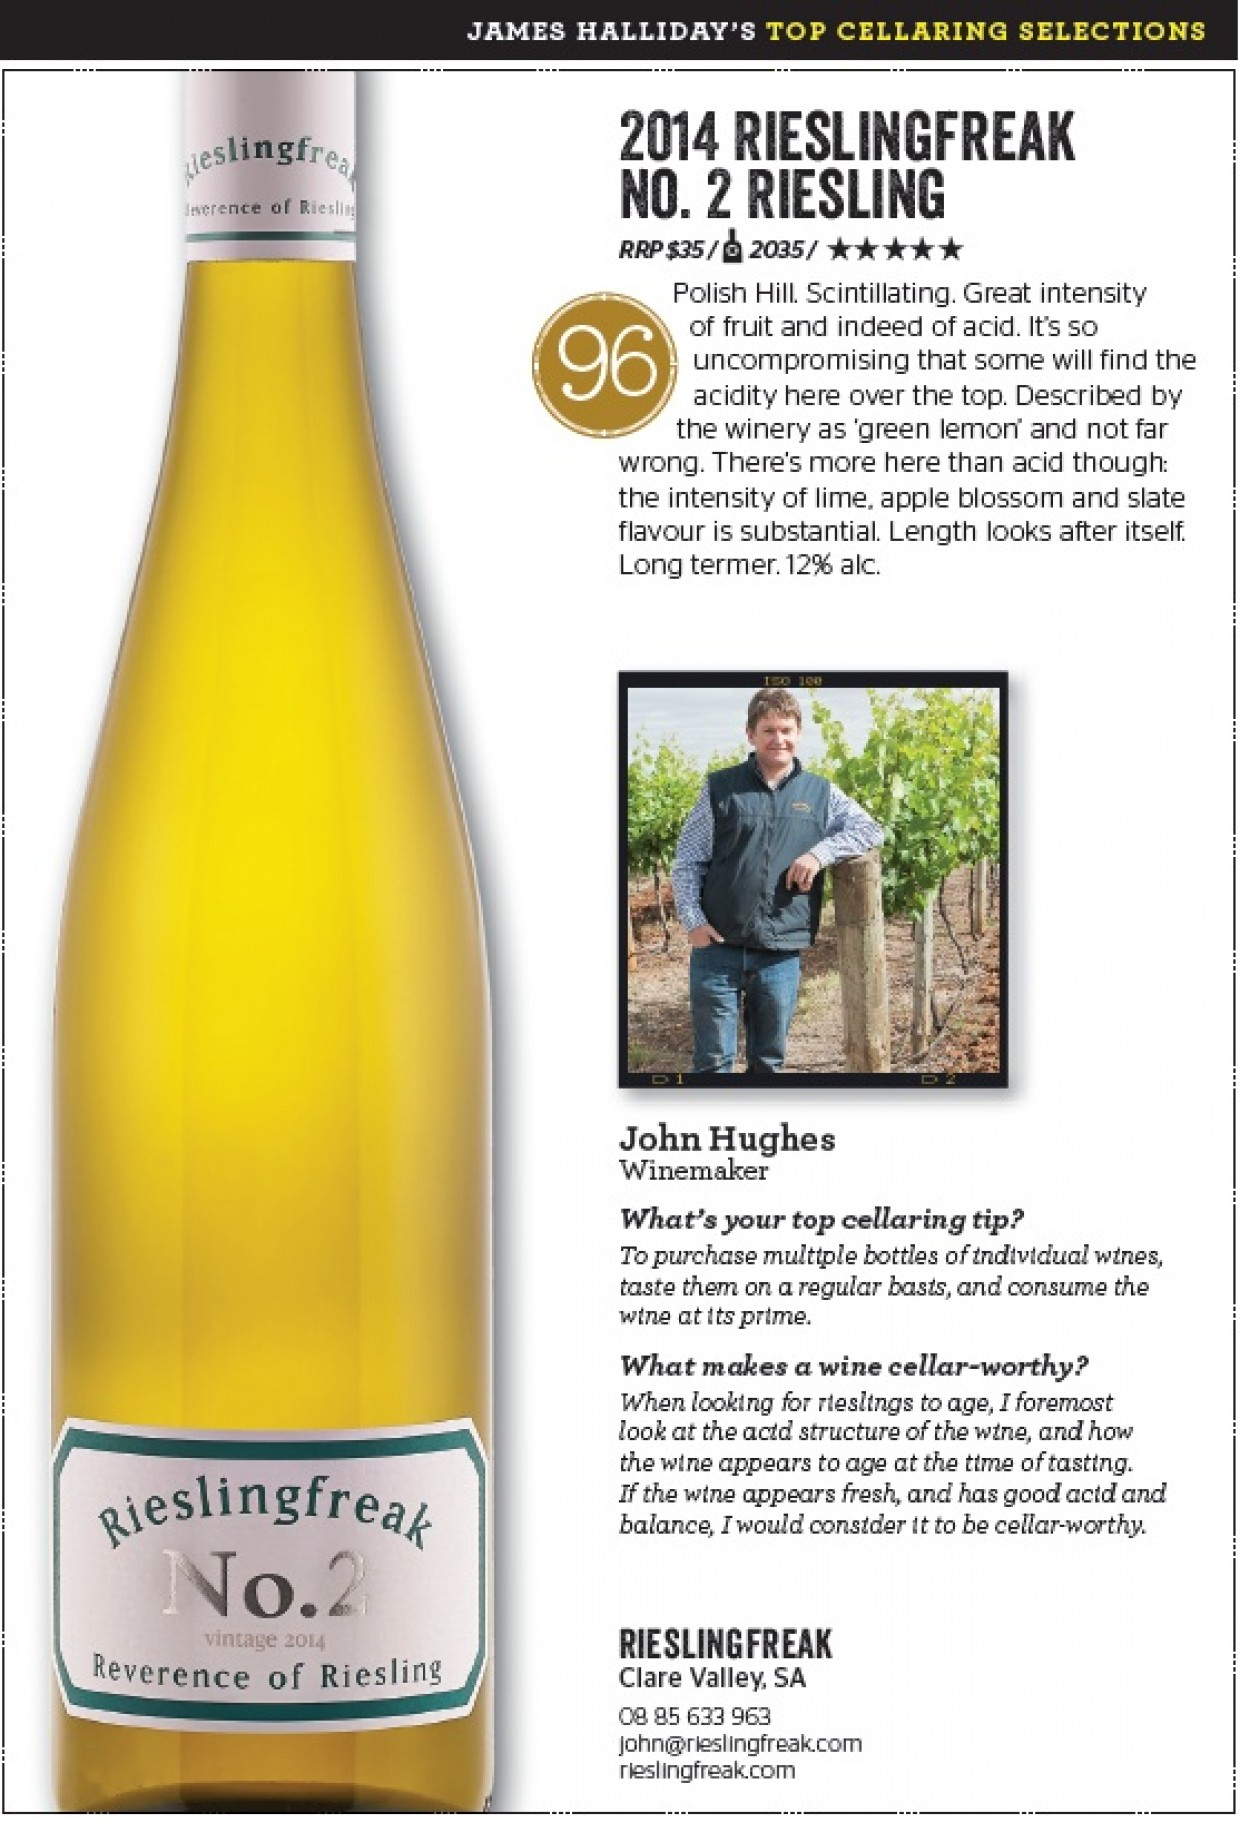 JAMES HALLIDAY'S TOP CELLARING SELECTIONS